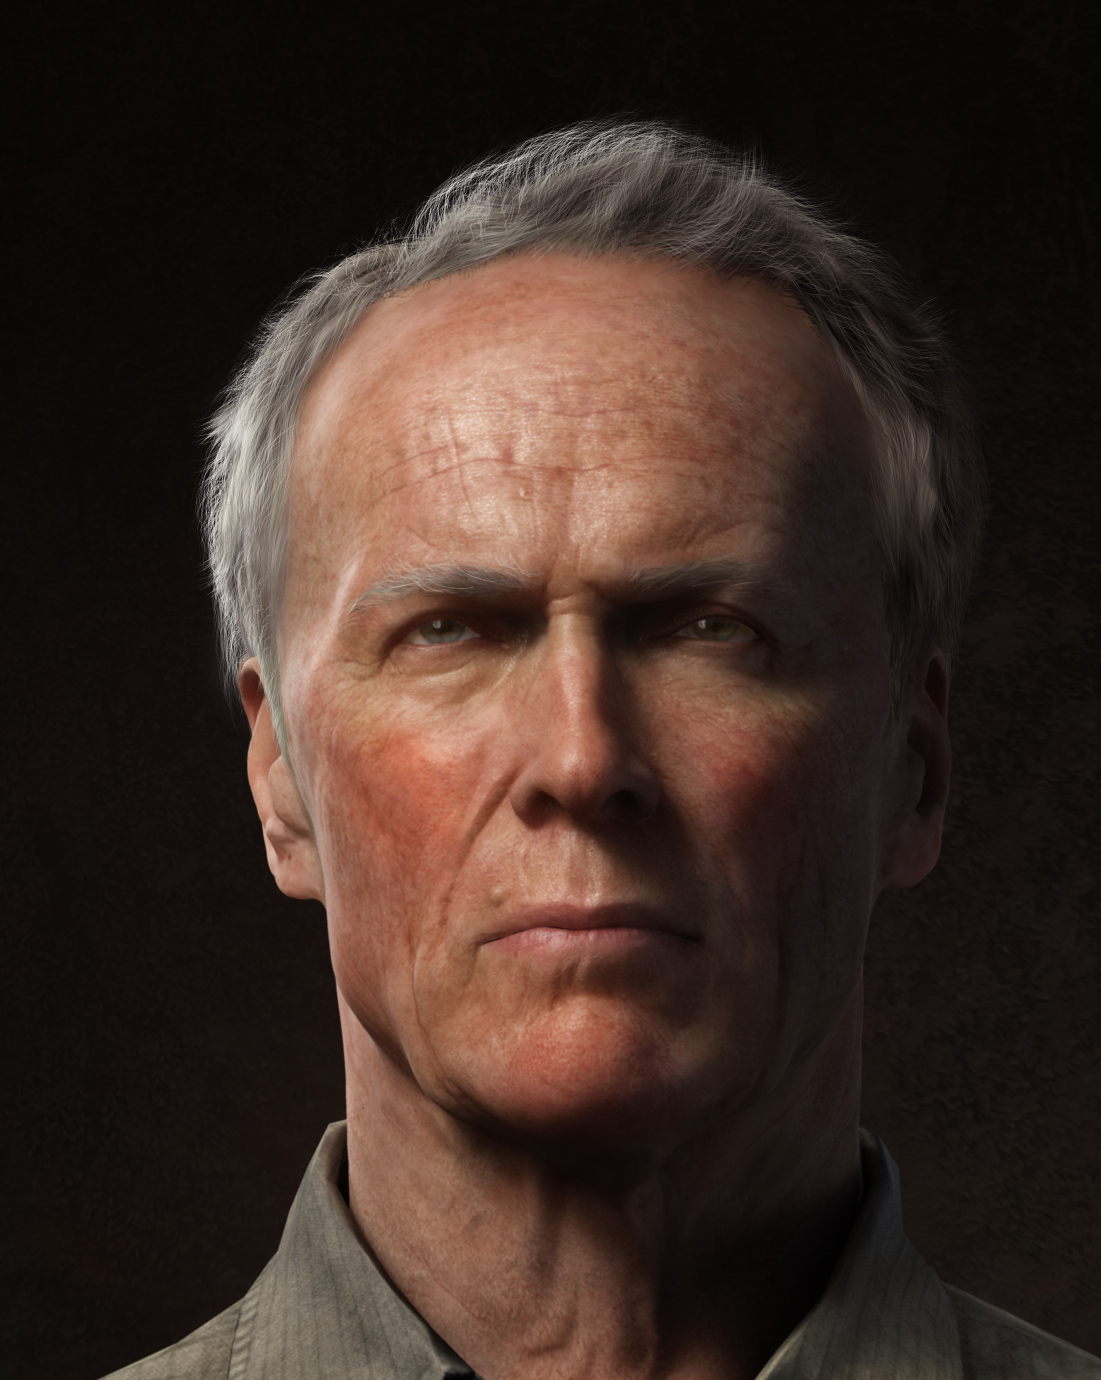 Dark And Light Portrait Of Clint Eastwood